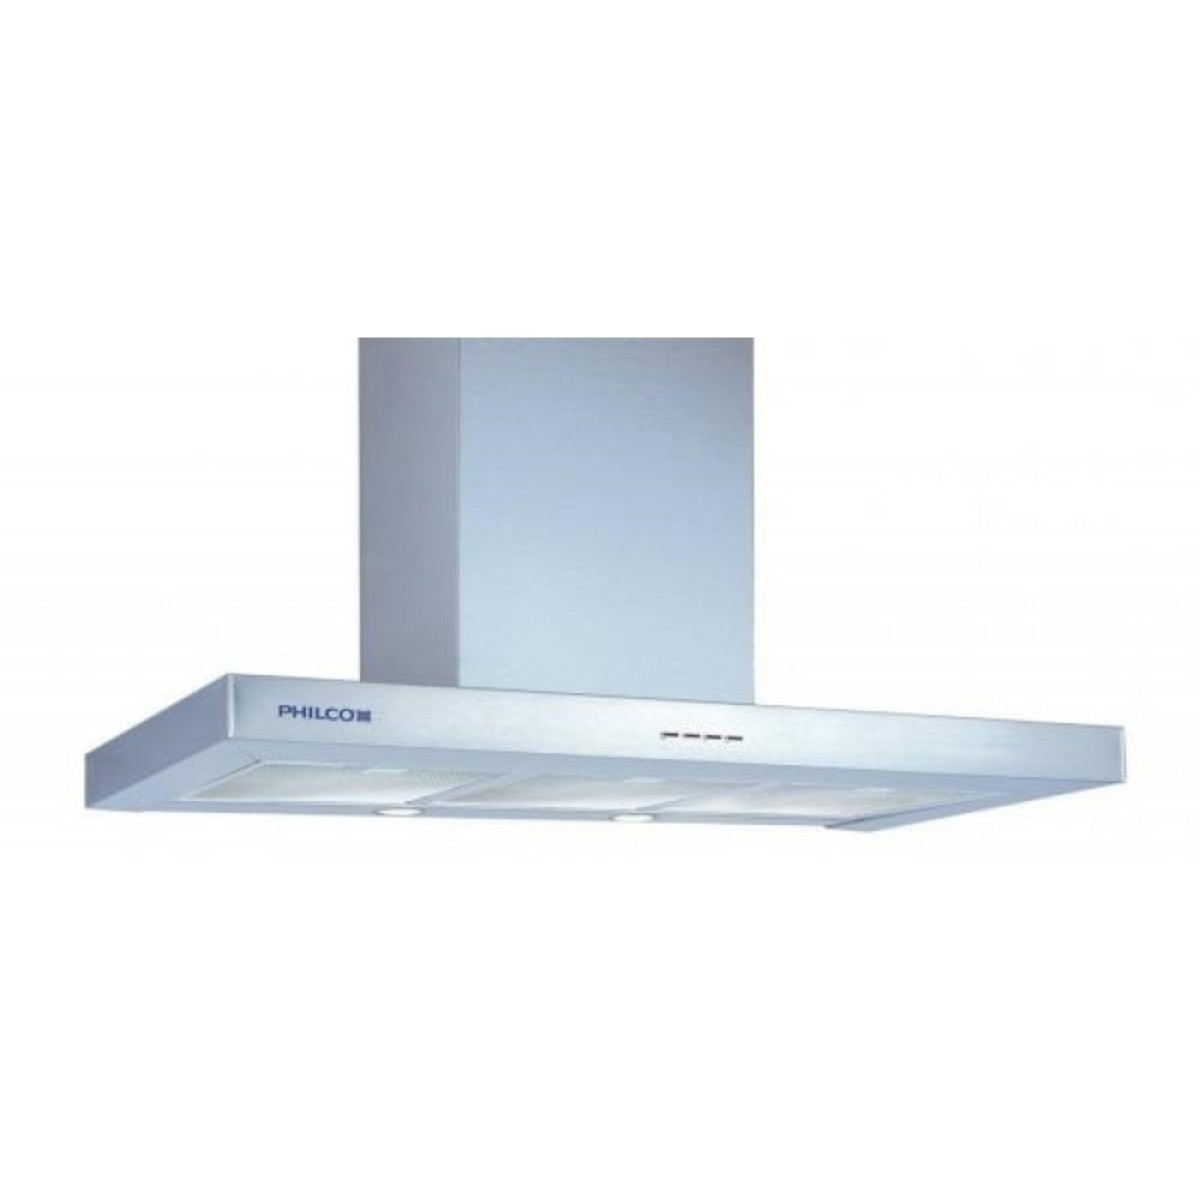 PC900S   90cm Chimney Hood  Hong Kong Warranty Genuine Products